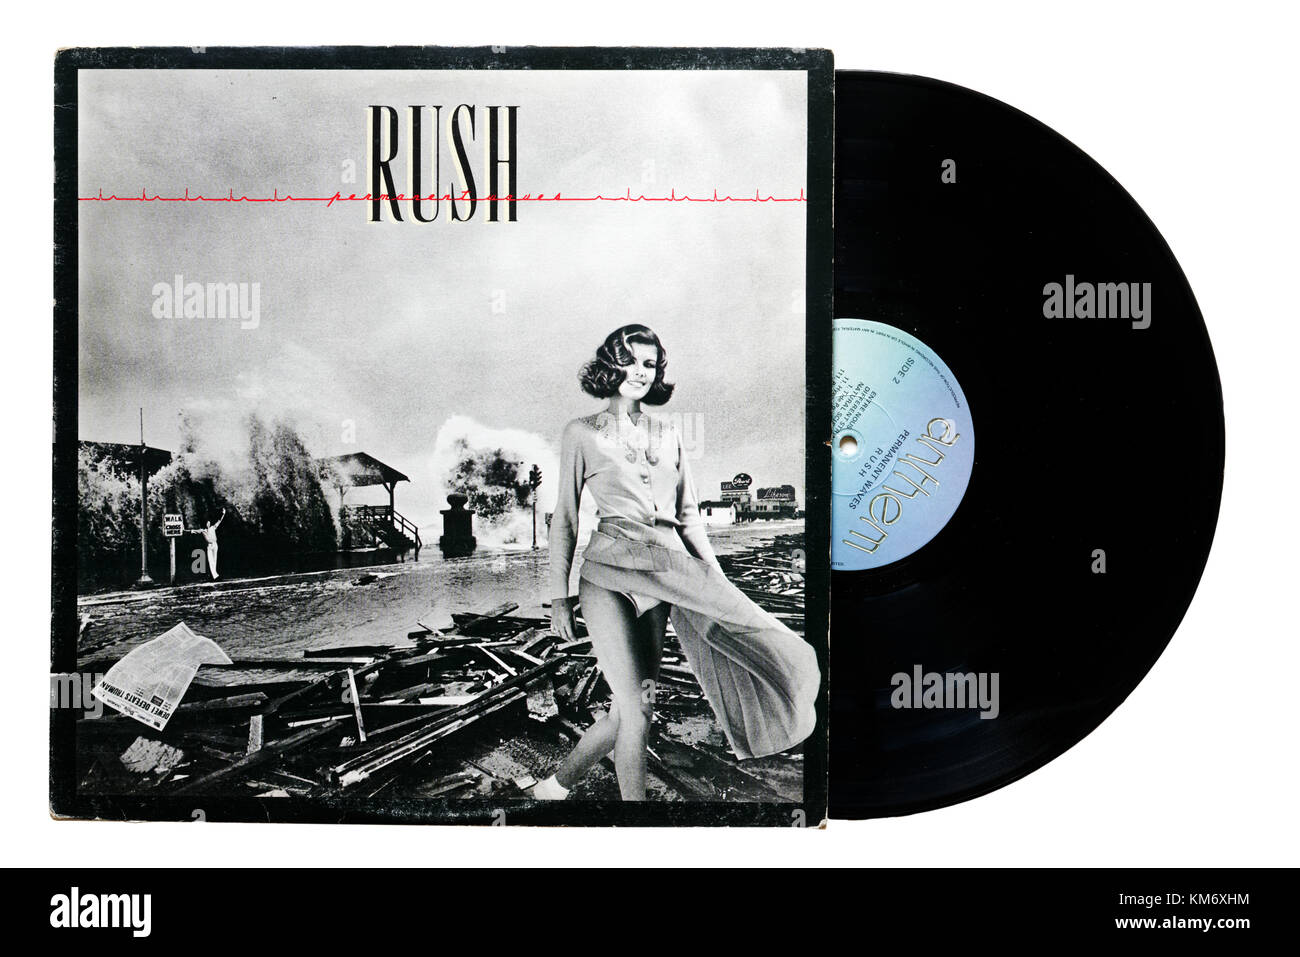 Rush album vagues Permanent Photo Stock